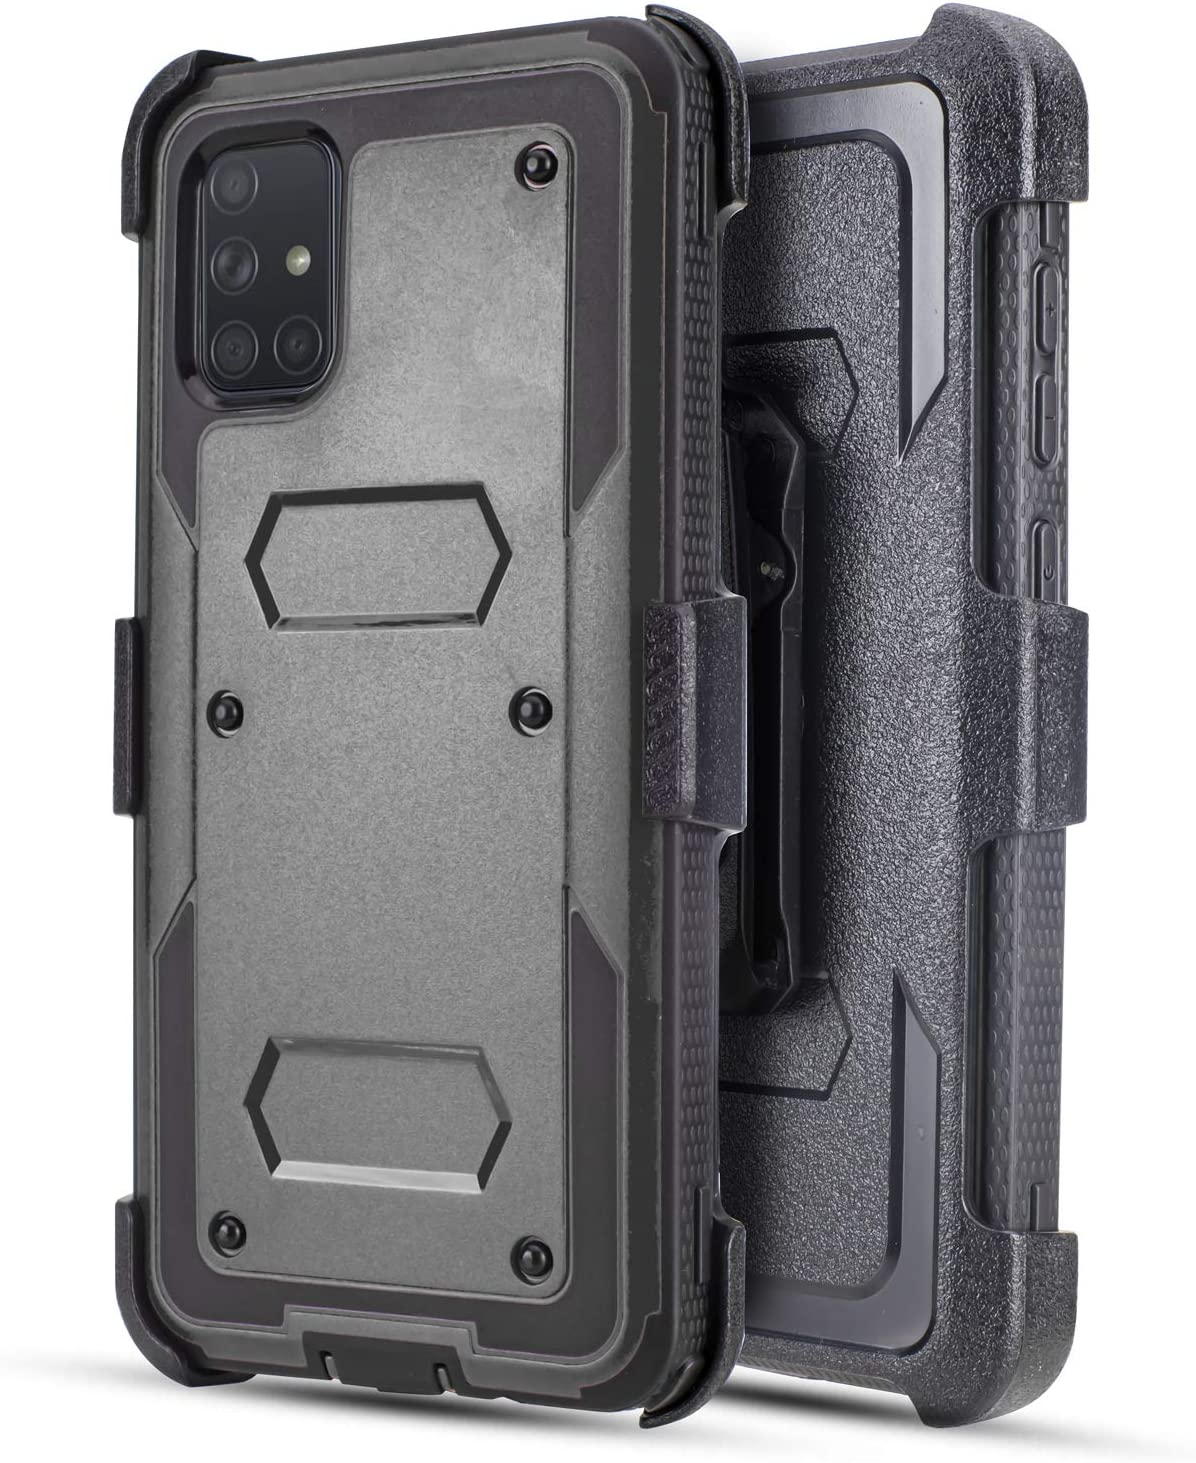 Customerfirst Samsung Galaxy A51 Case (Does NOT FIT A50) Built-in [Screen Protector] Heavy Duty Holster Cover [Belt Clip][Kickstand] (Black)